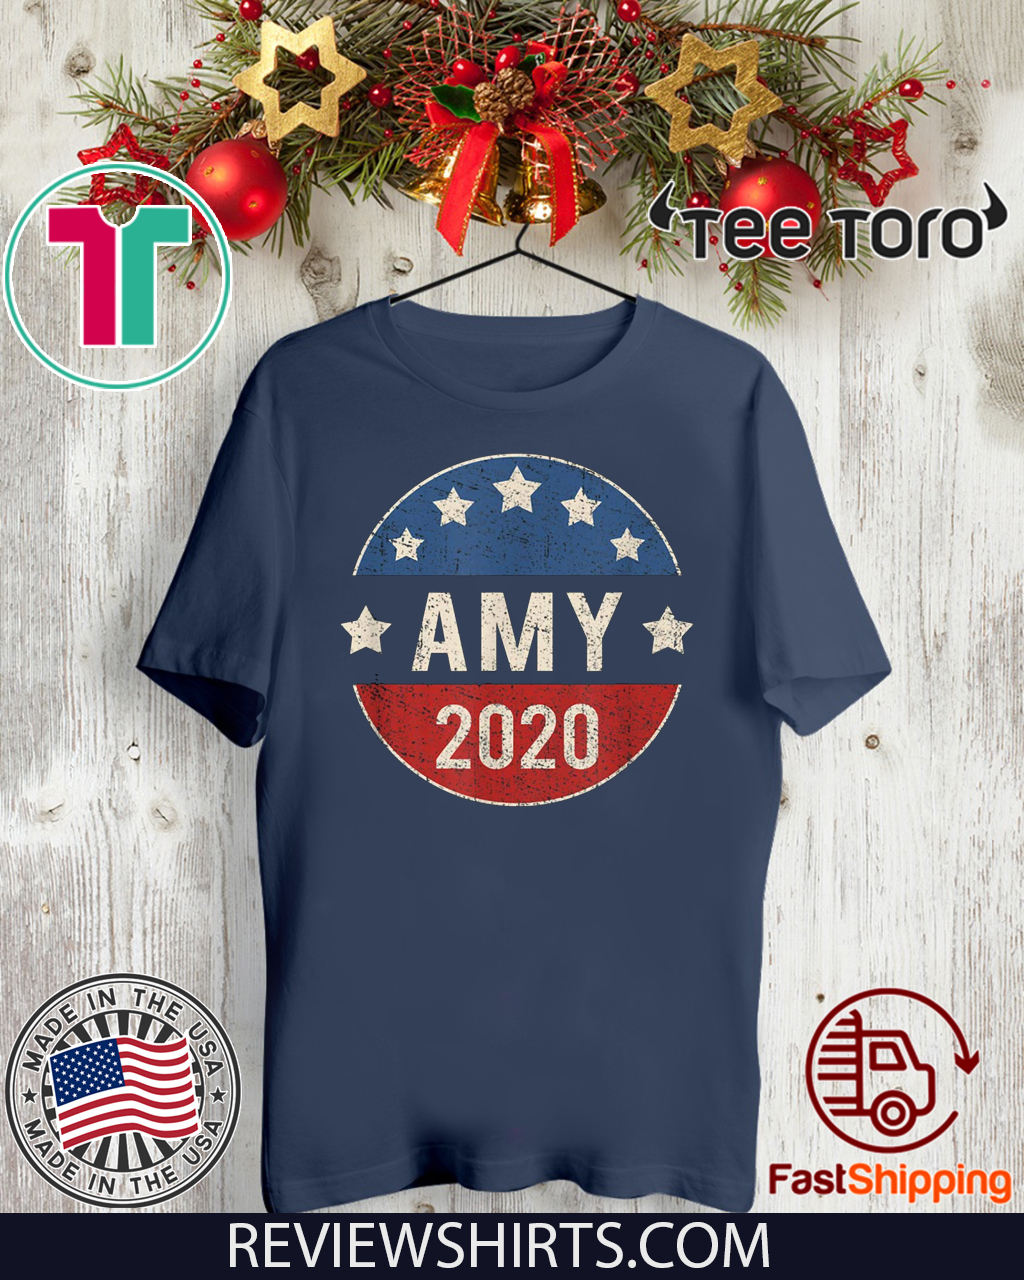 Amy Klobuchar For President 2020 Retro Election Button Hot T-Shirt